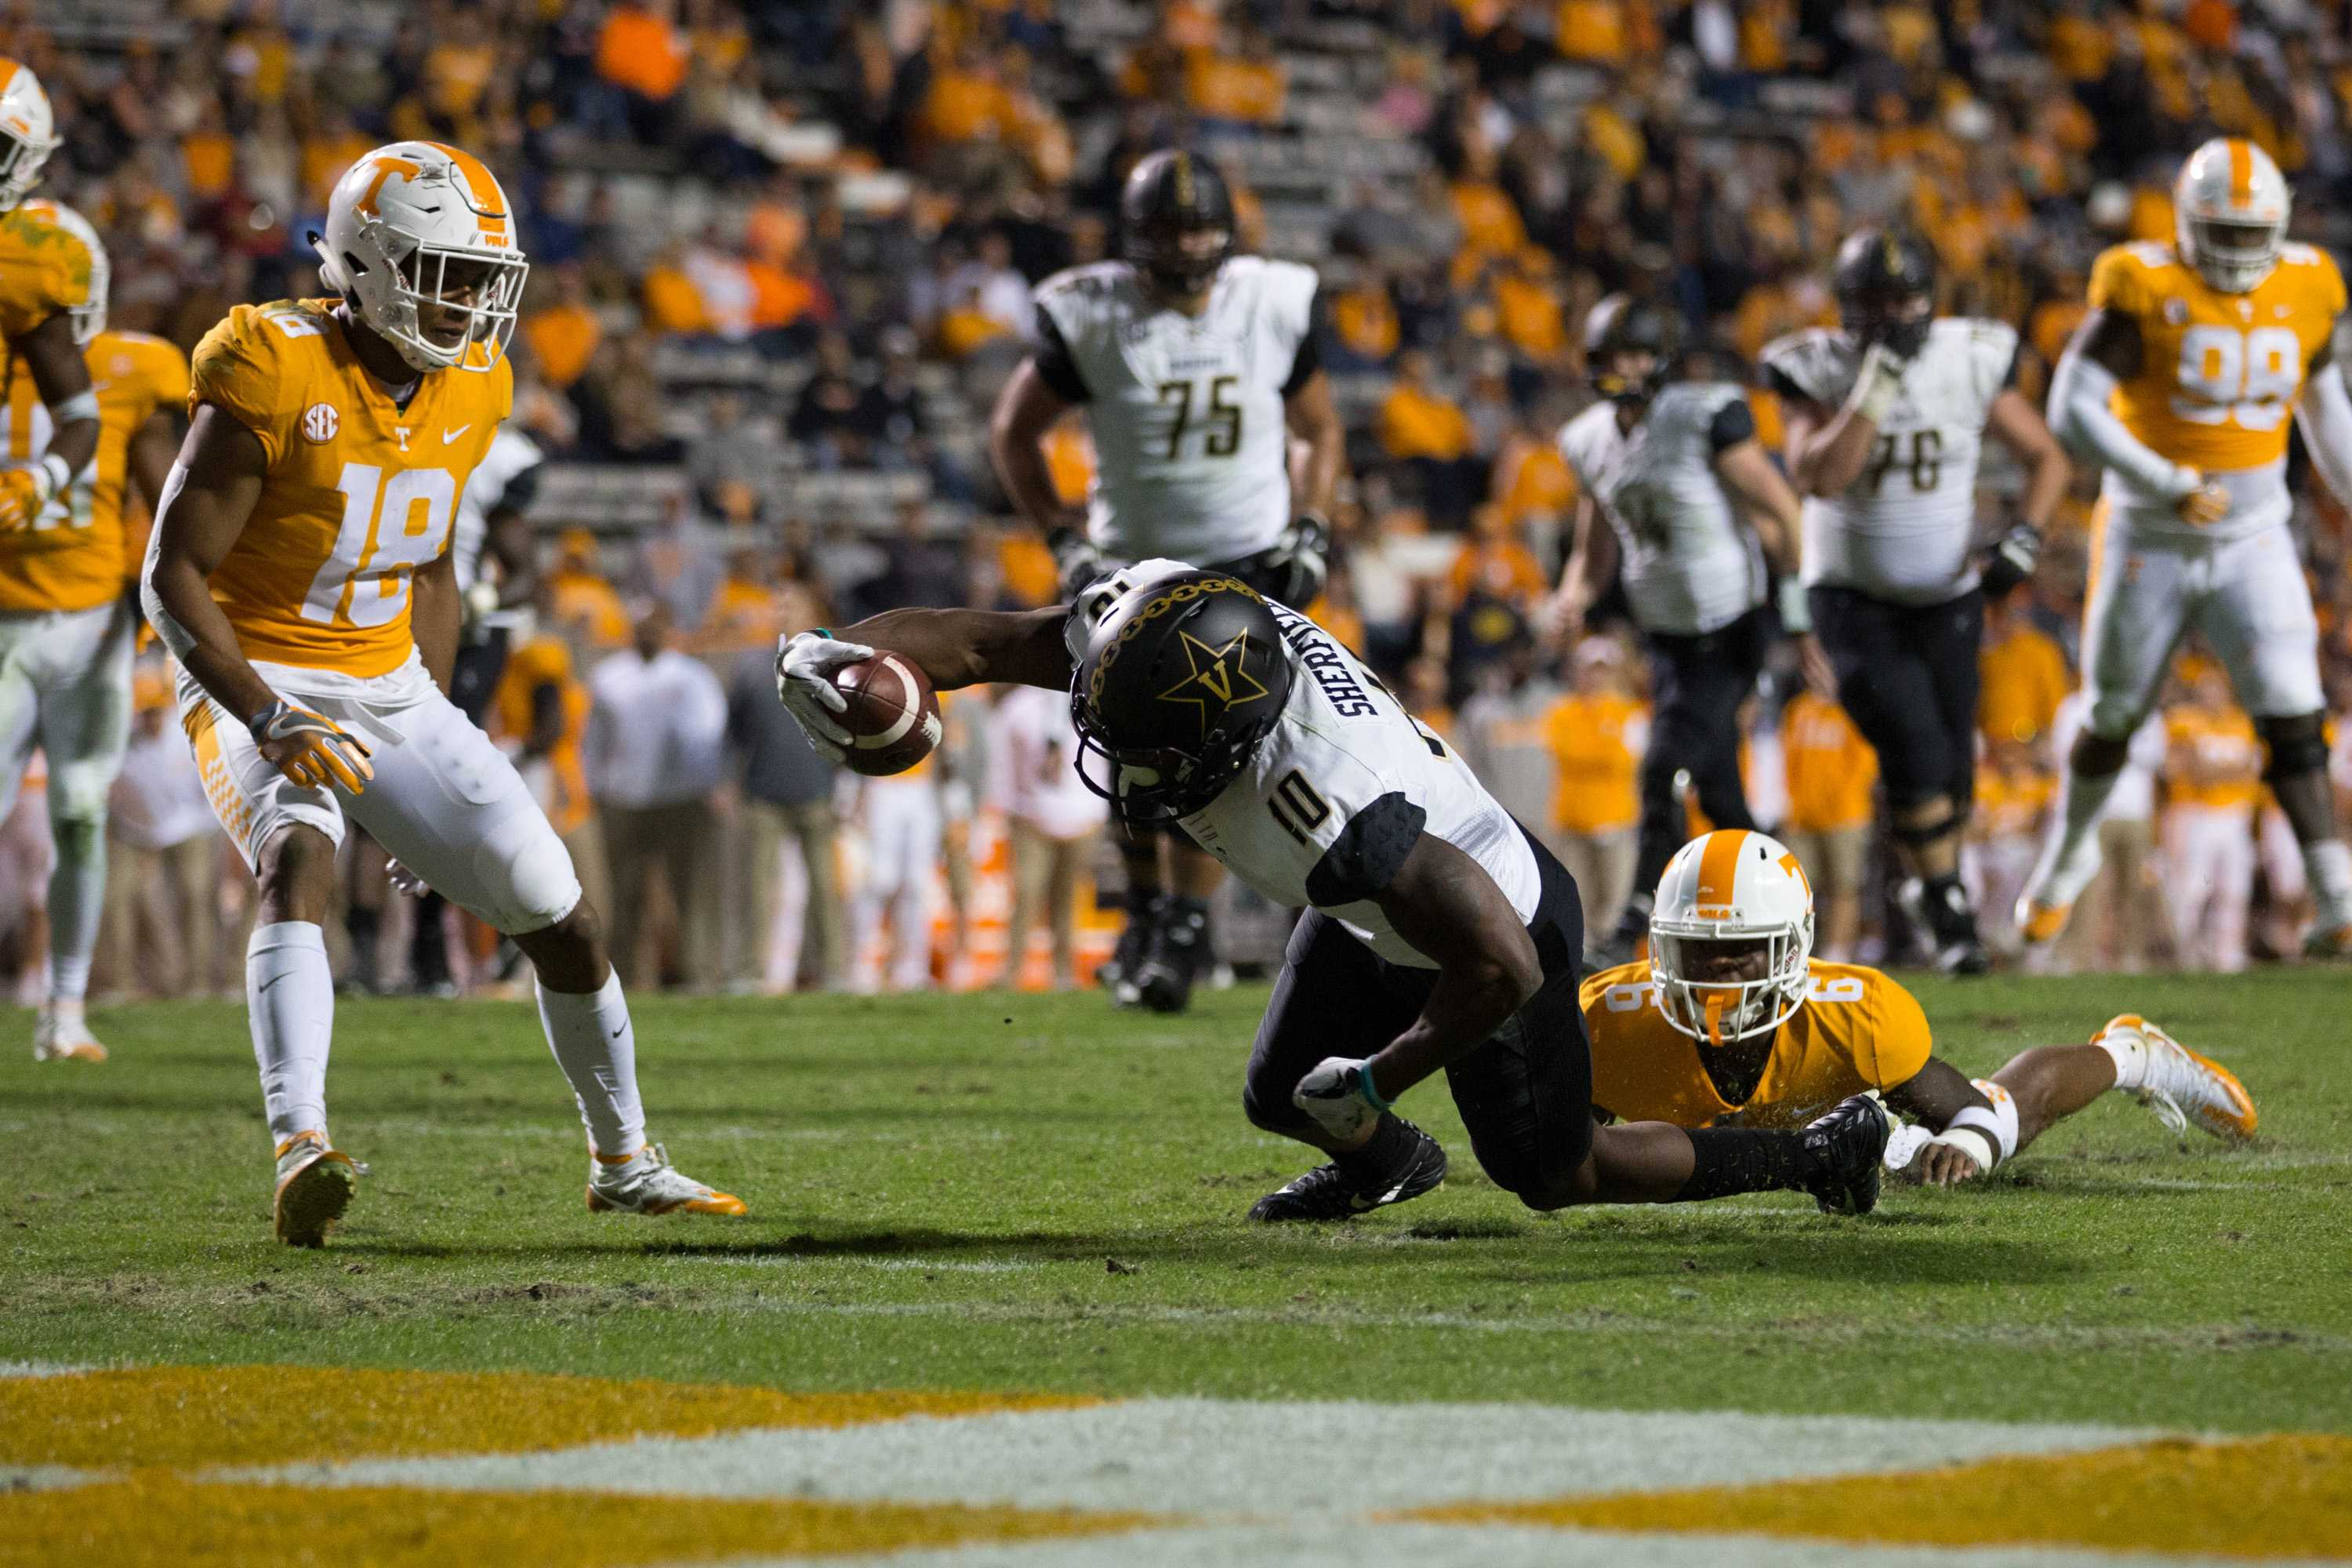 PHOTOS OF THE WEEK: Vandy football team beats Tennessee & more